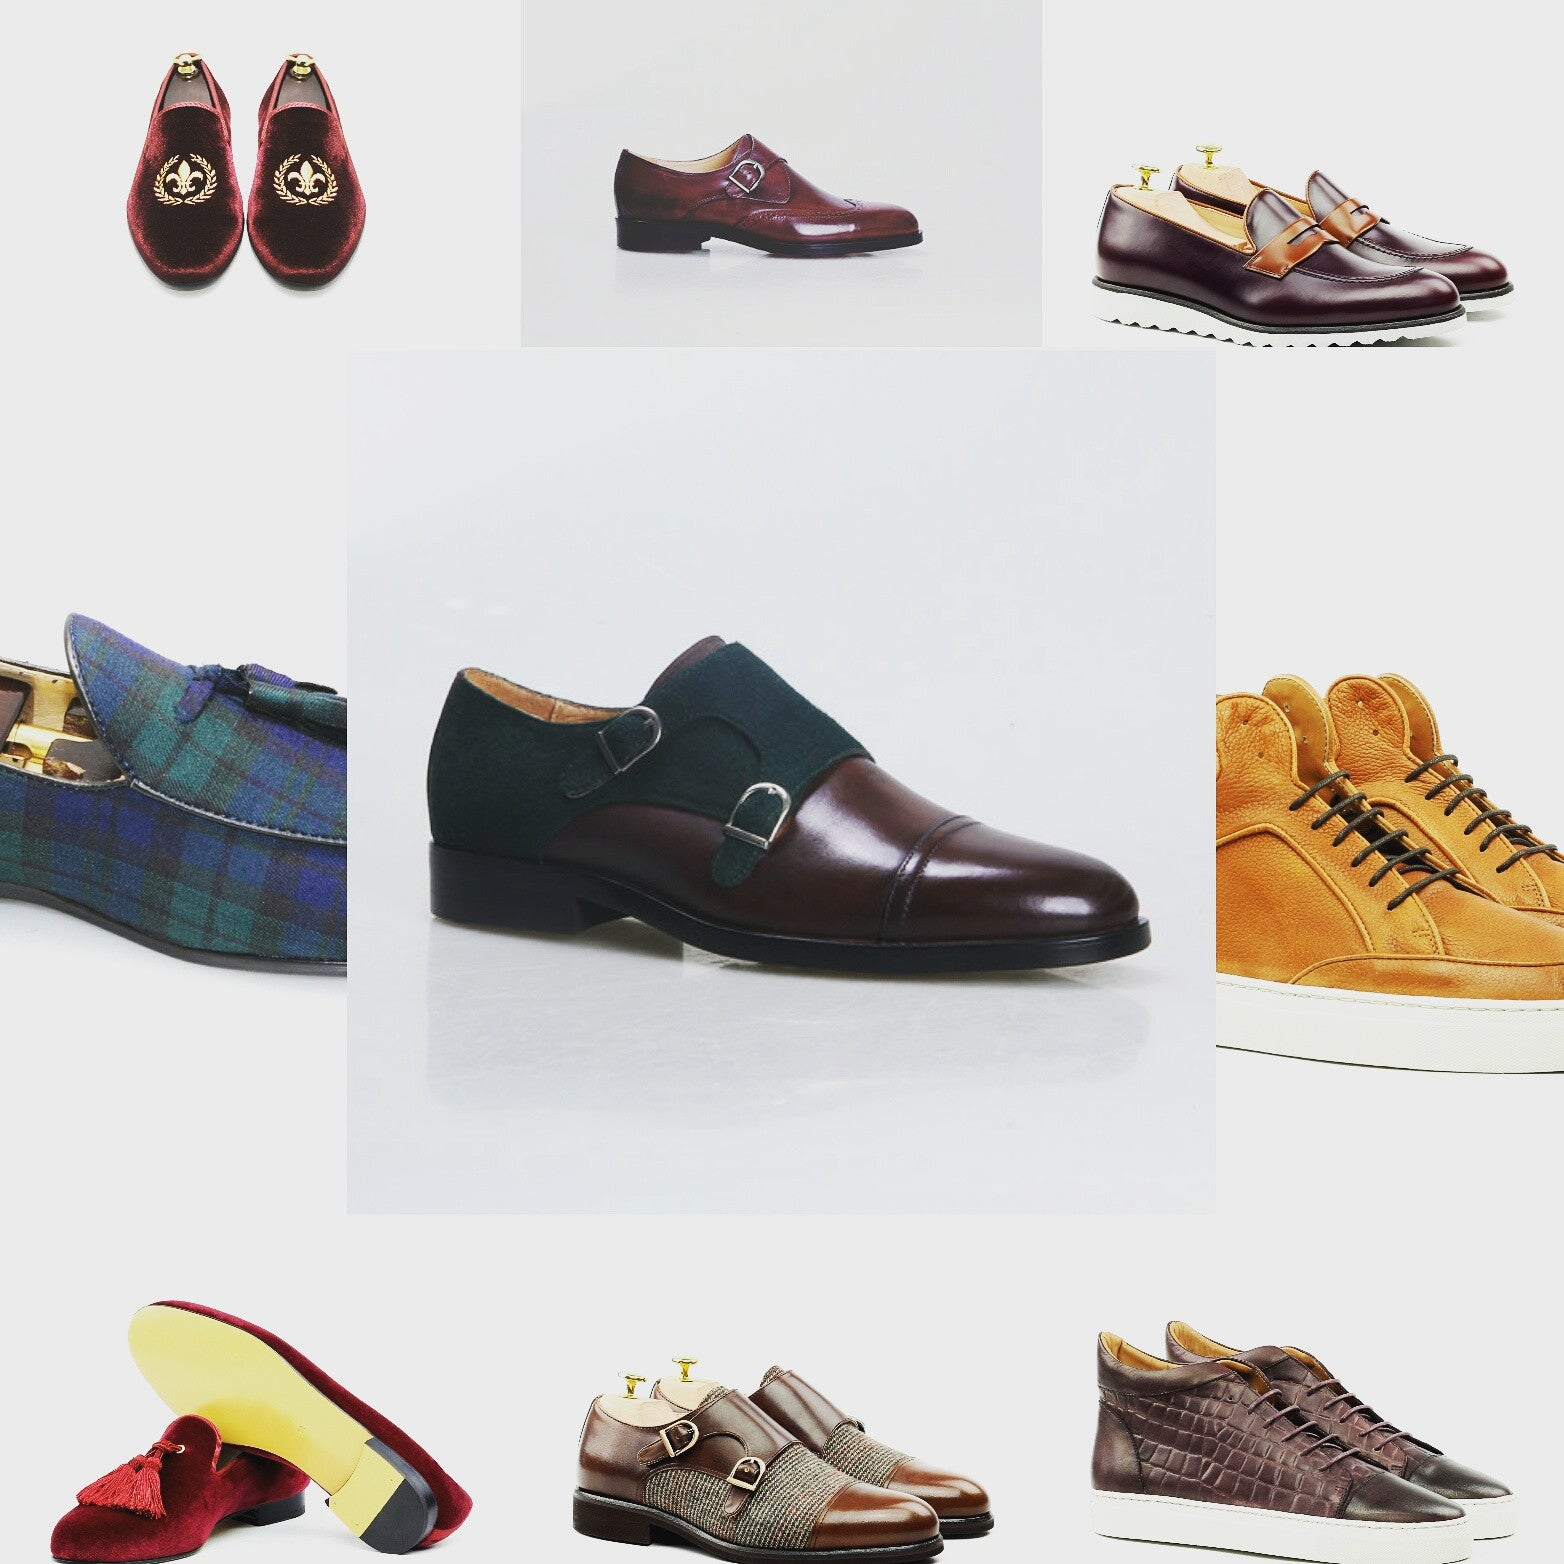 Design Your Shoe